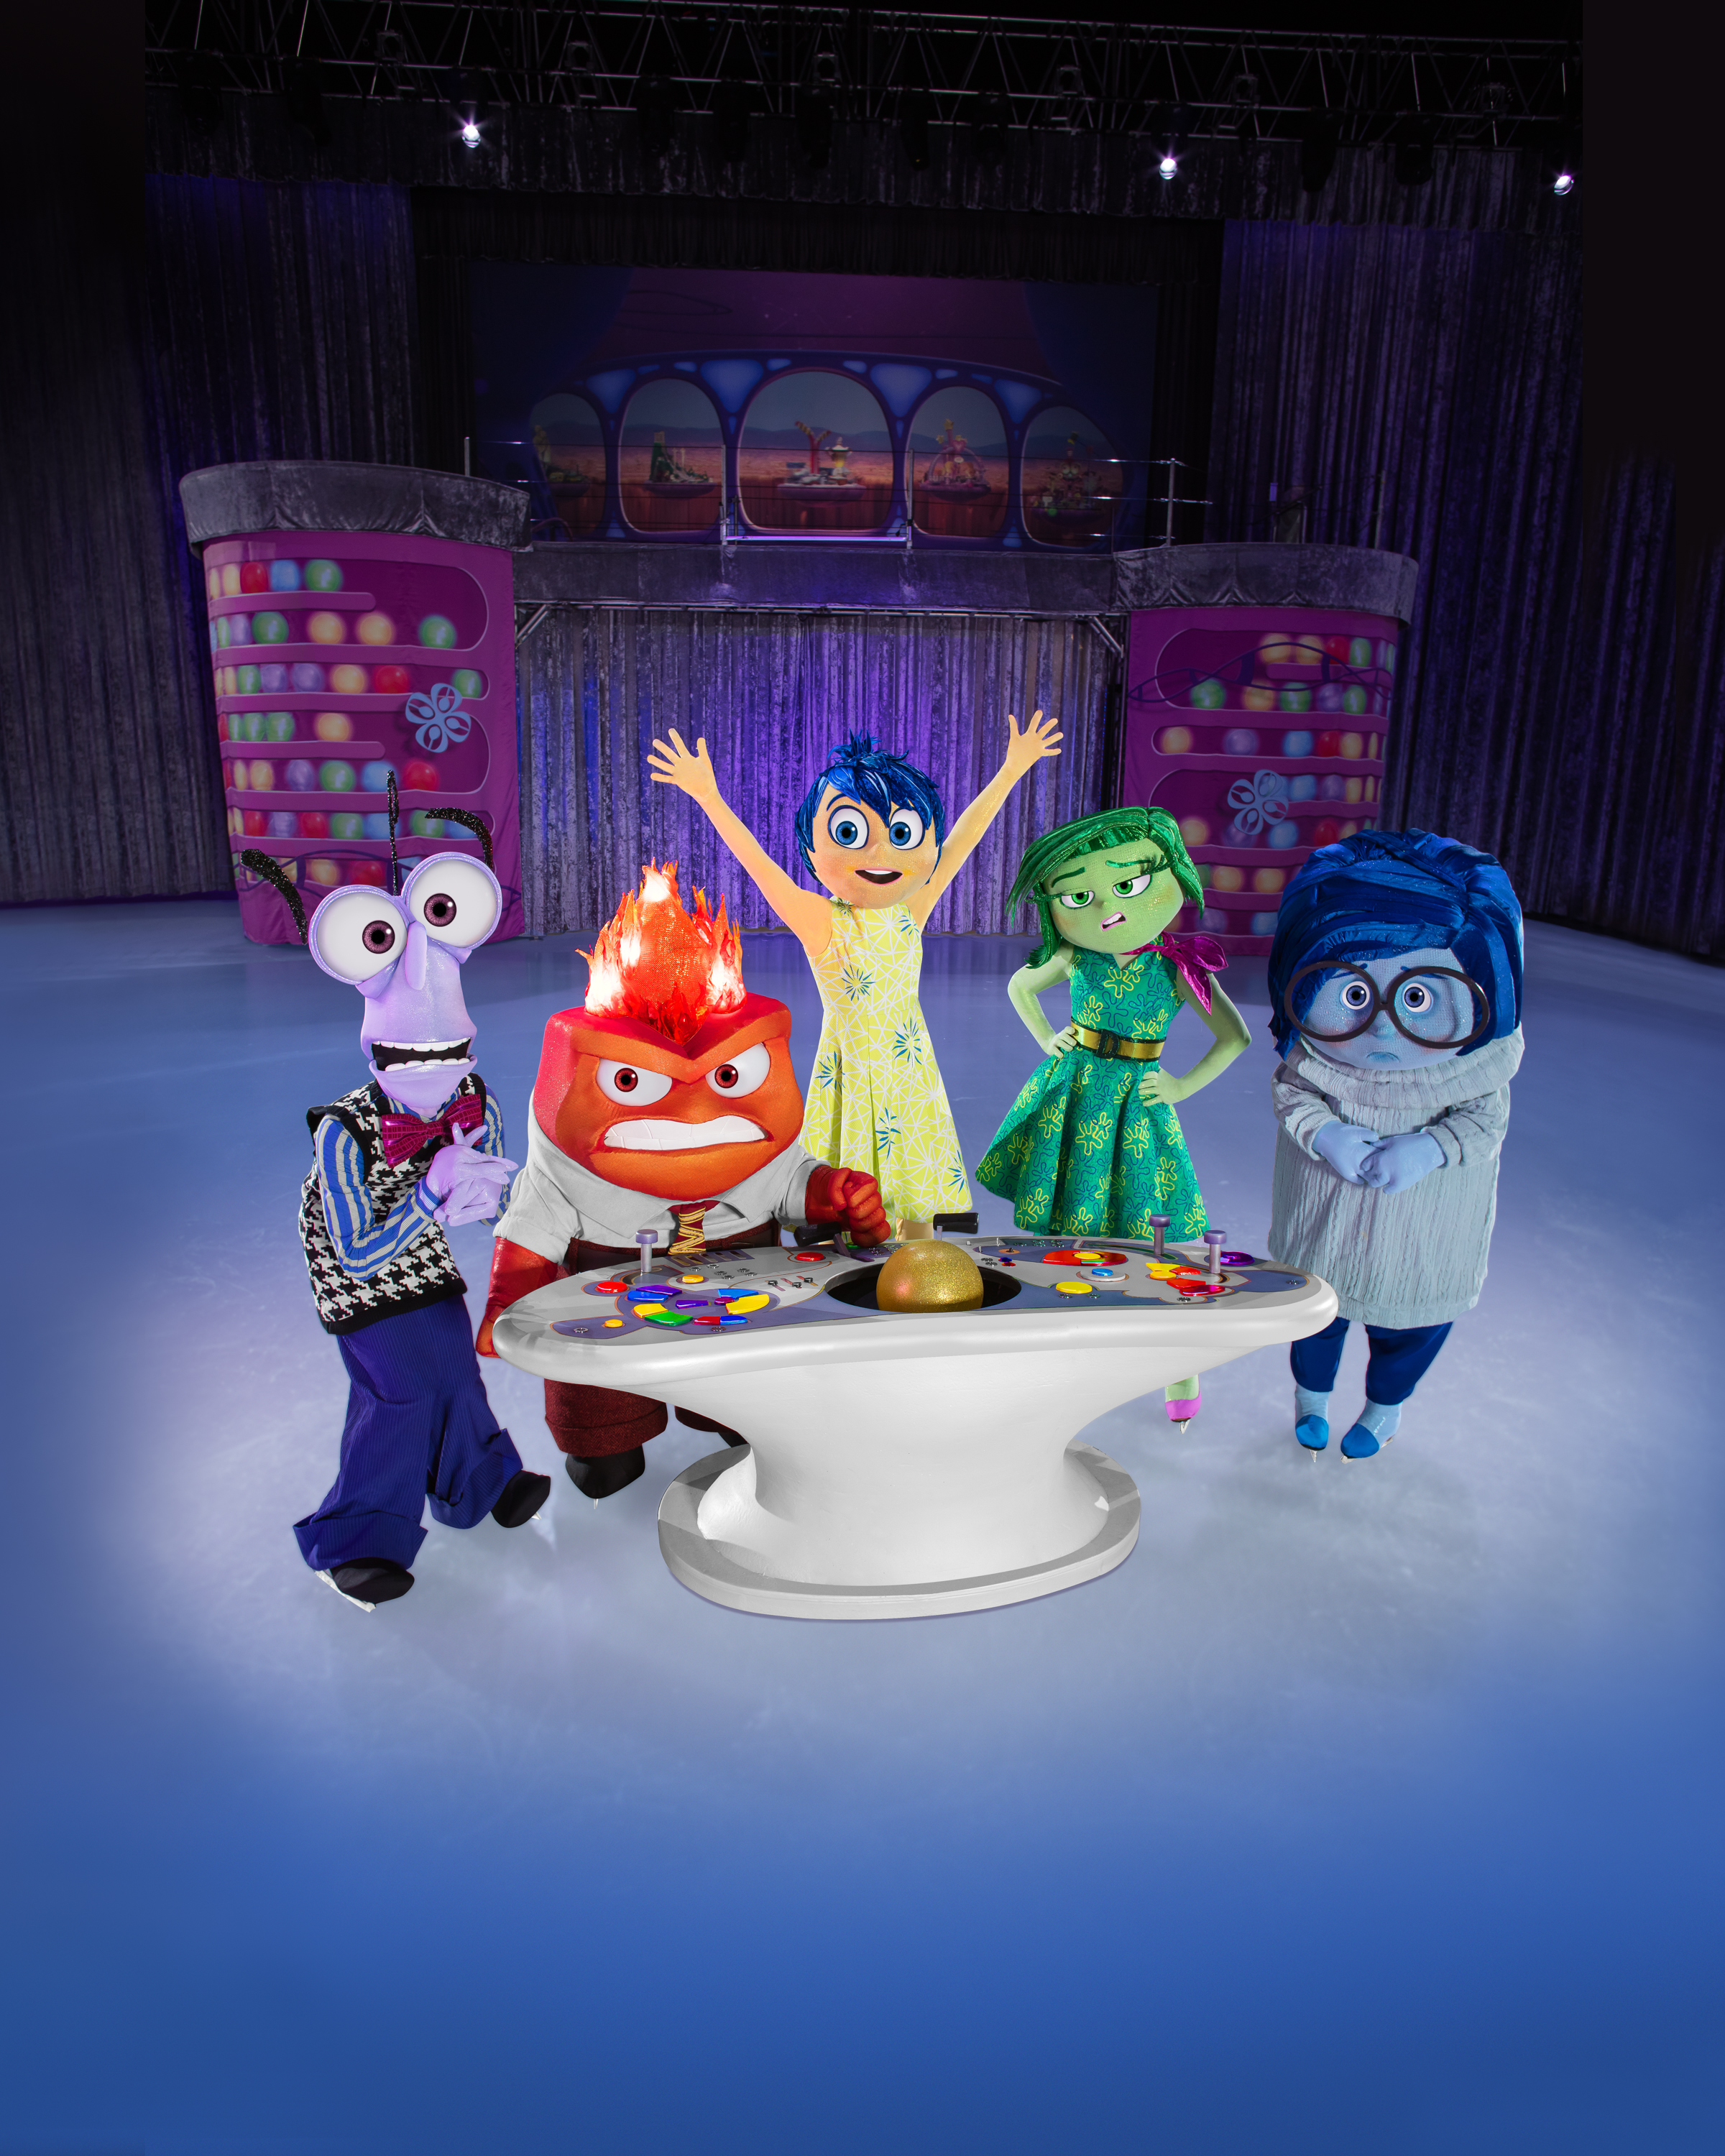 Disney's Inside out characters